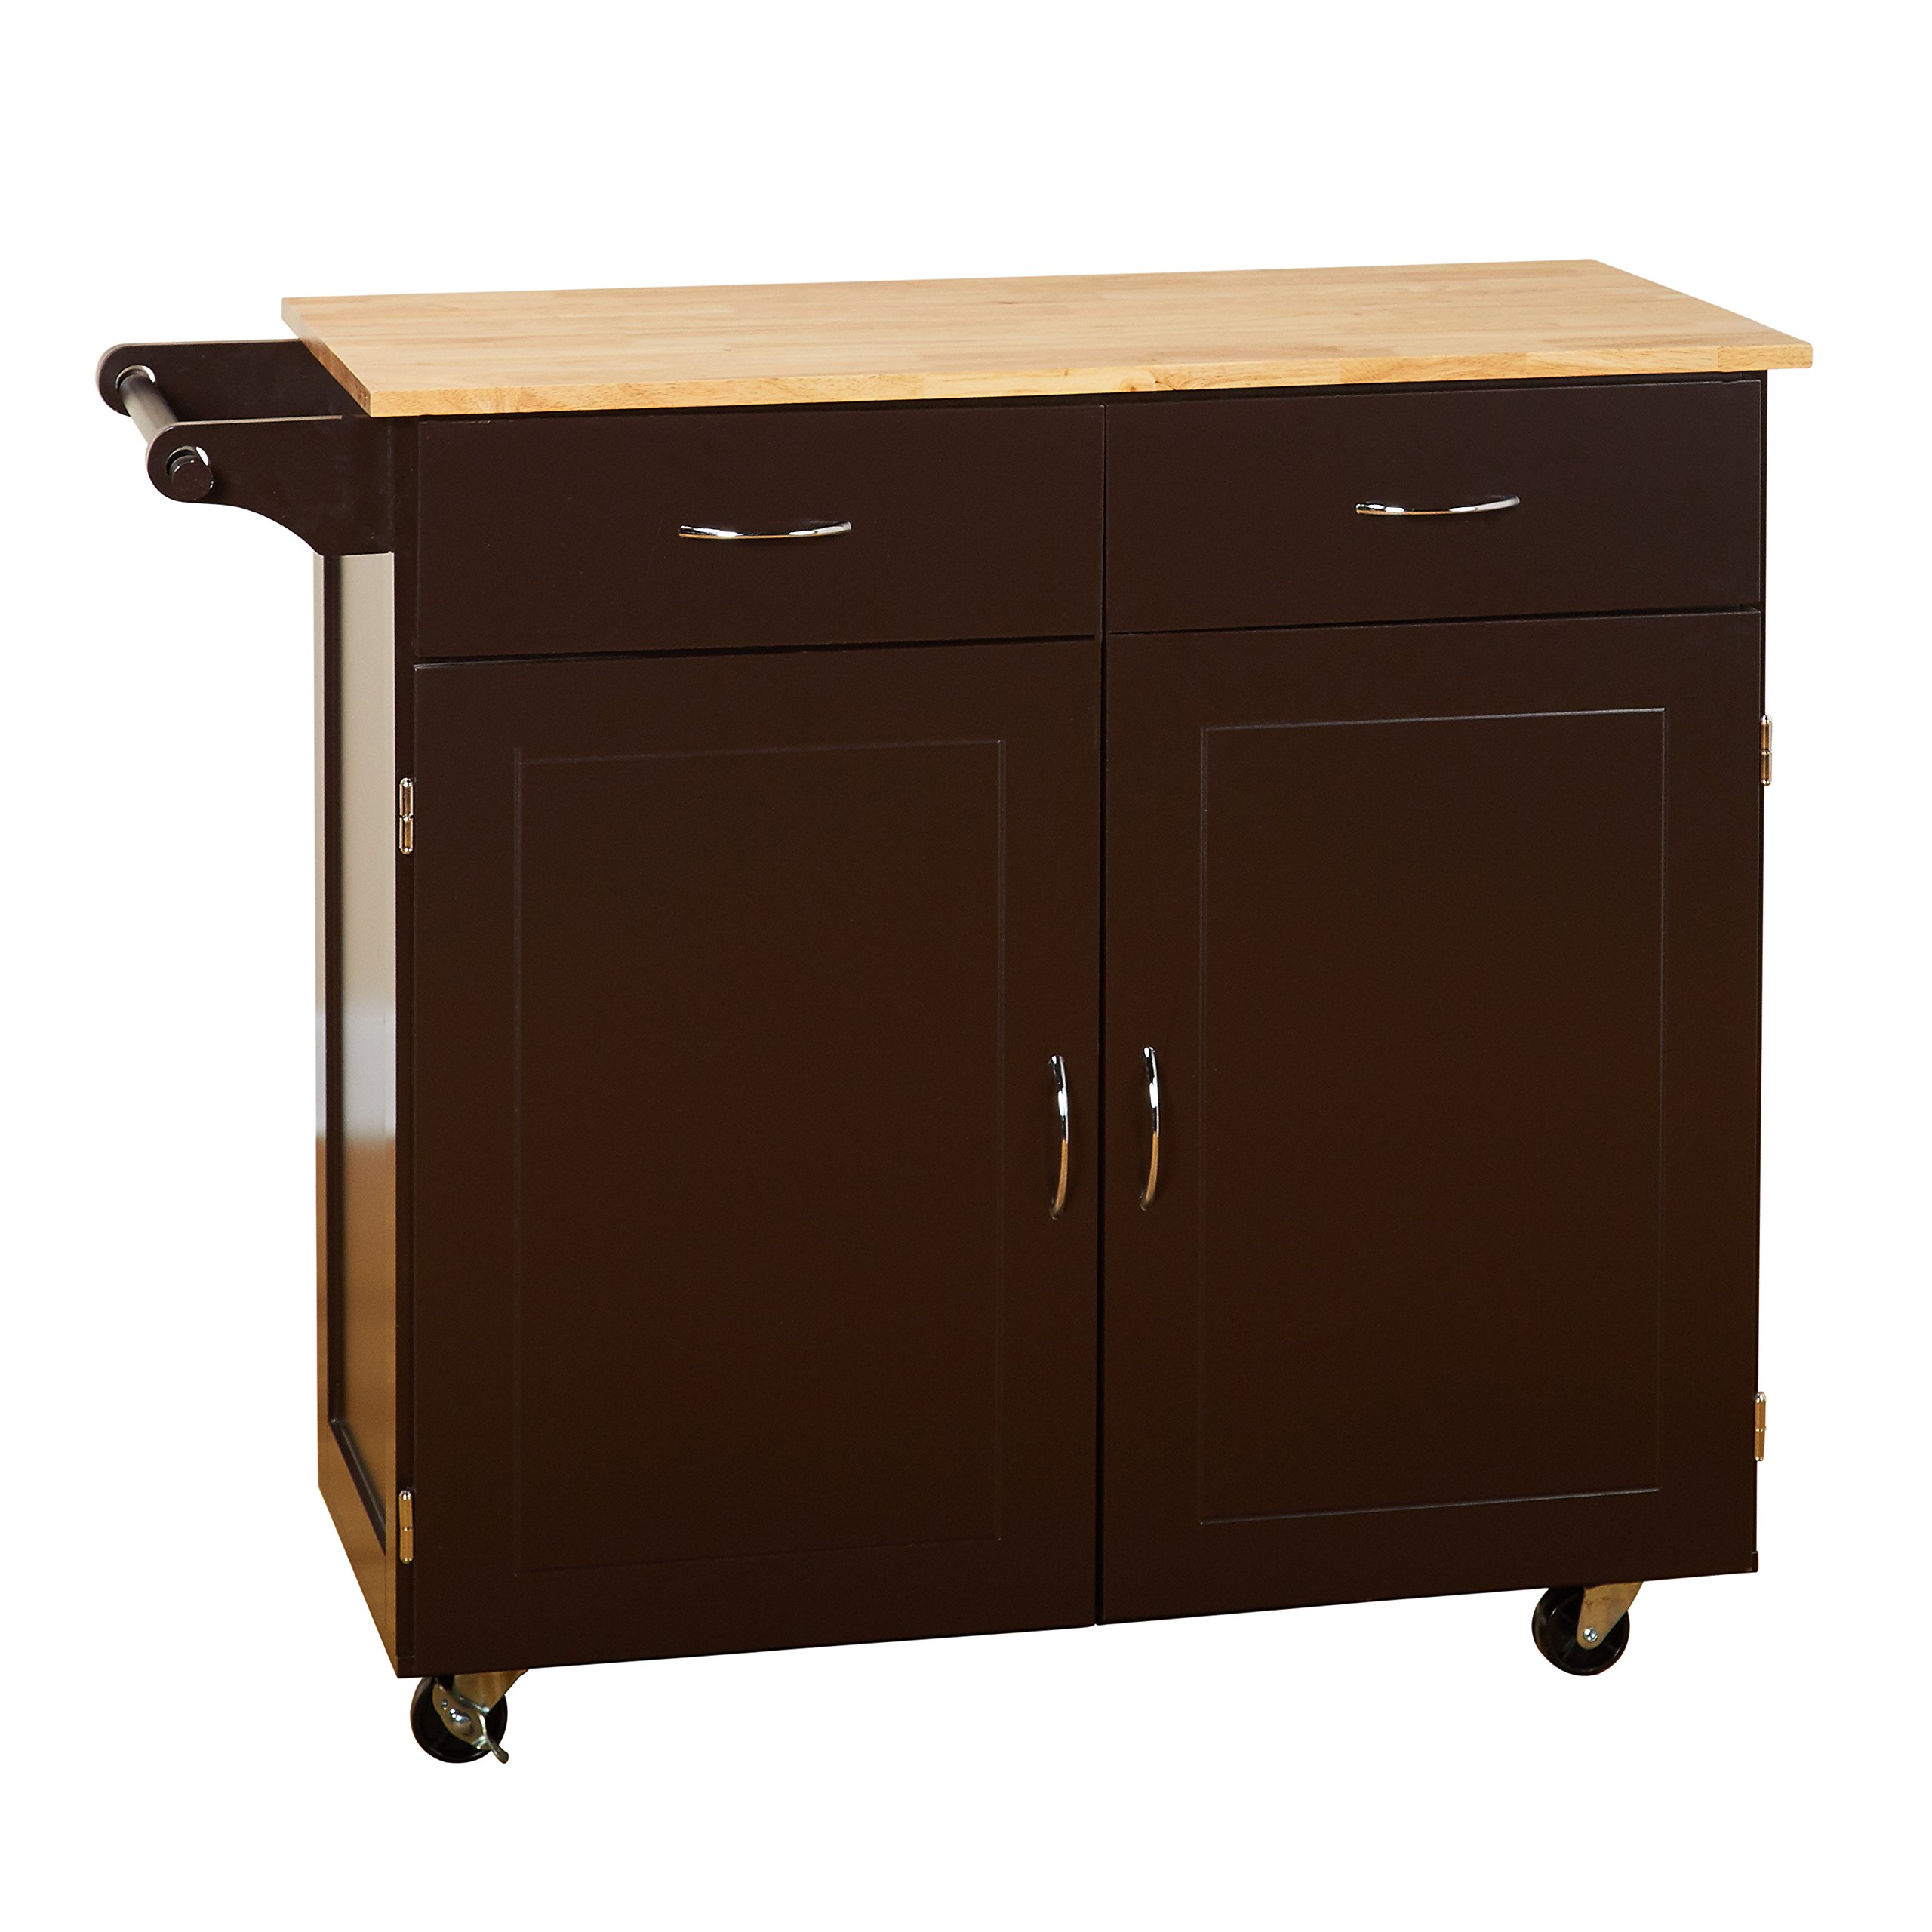 Target Marketing Systems 60046ESP Large Kitchen Cart, Espresso/Natural